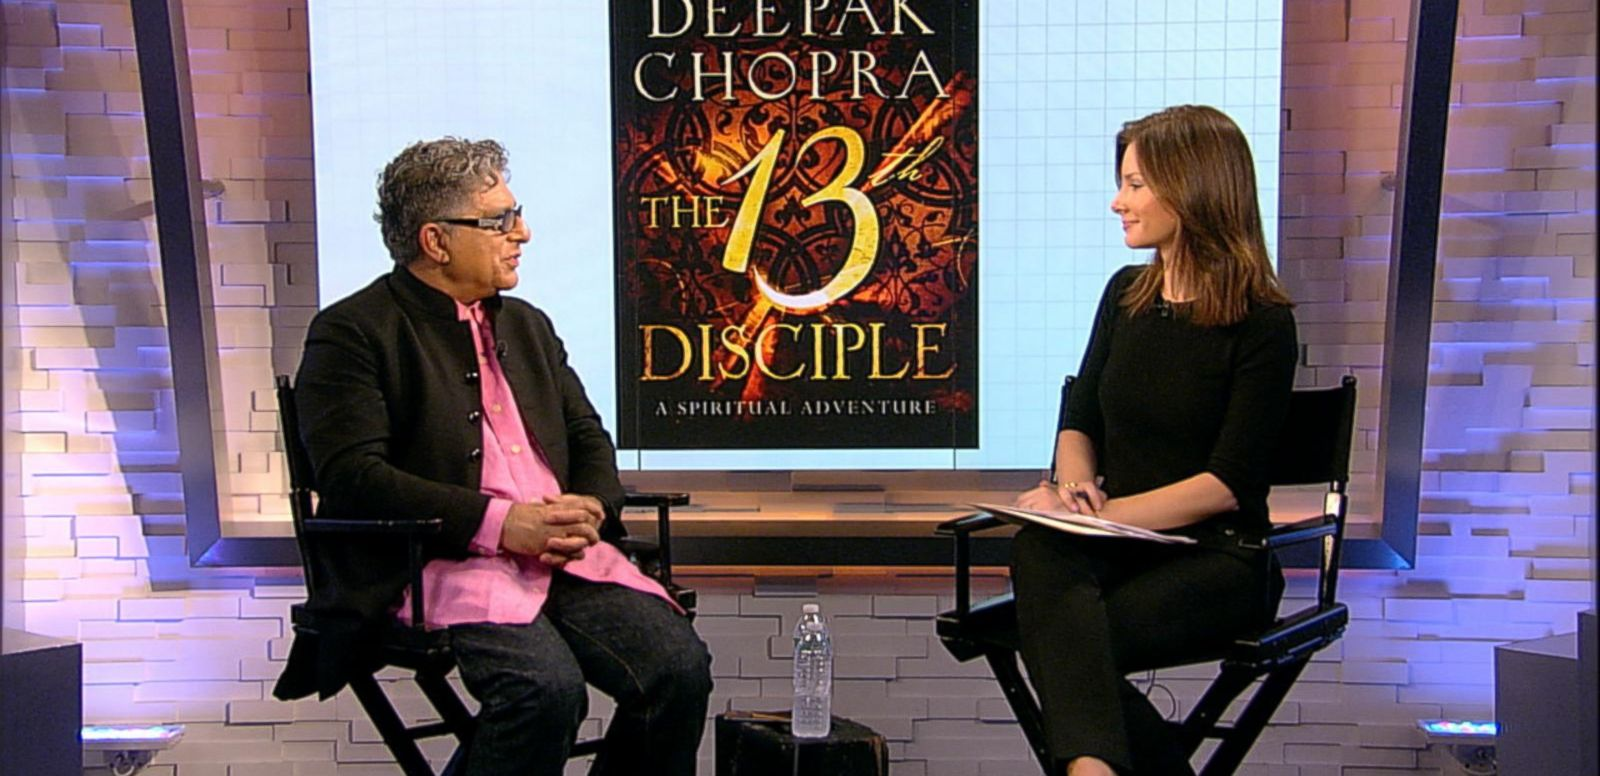 VIDEO: Watch Deepak Chopra Unedited on 'Real Biz'